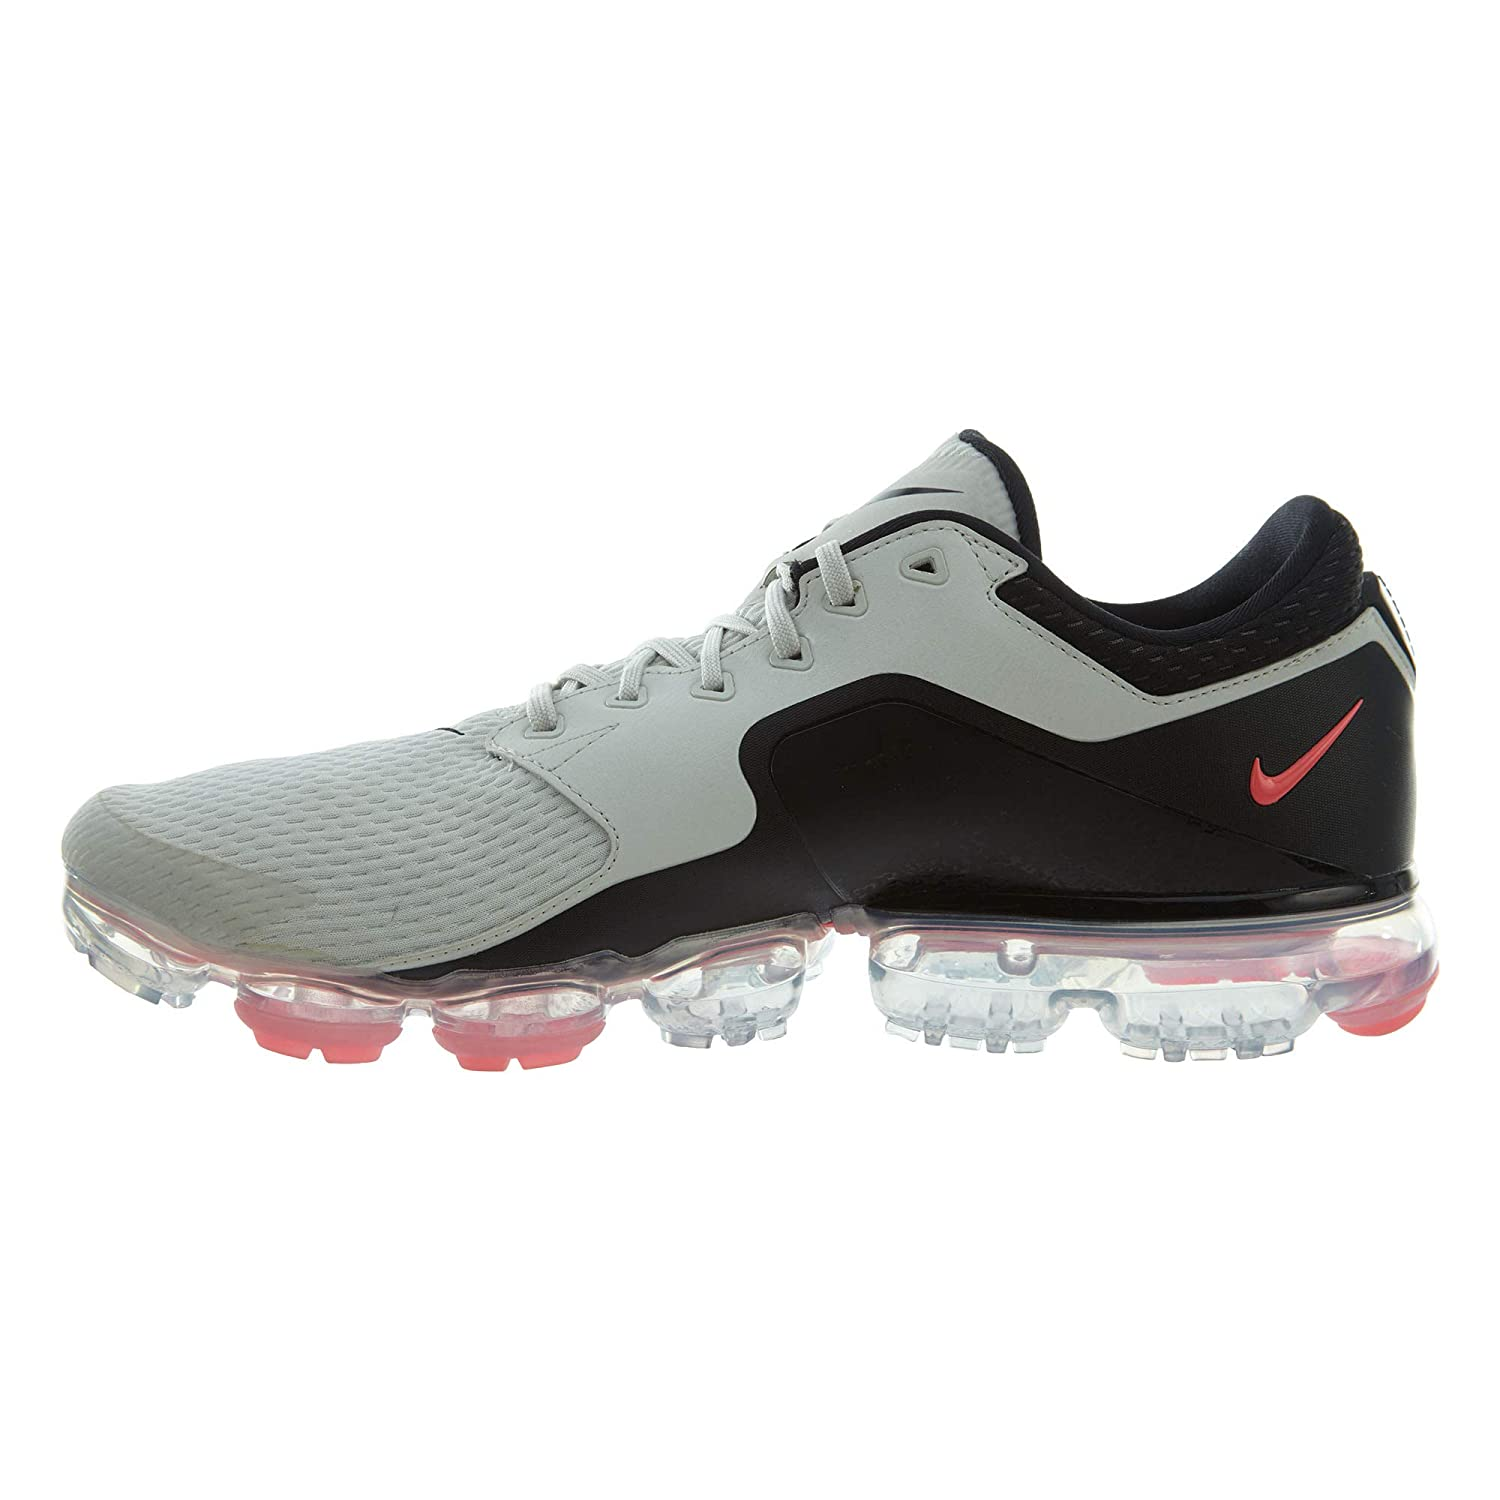 new style 8bba0 8c9bd Nike Men's Air Vapormax Running Shoes